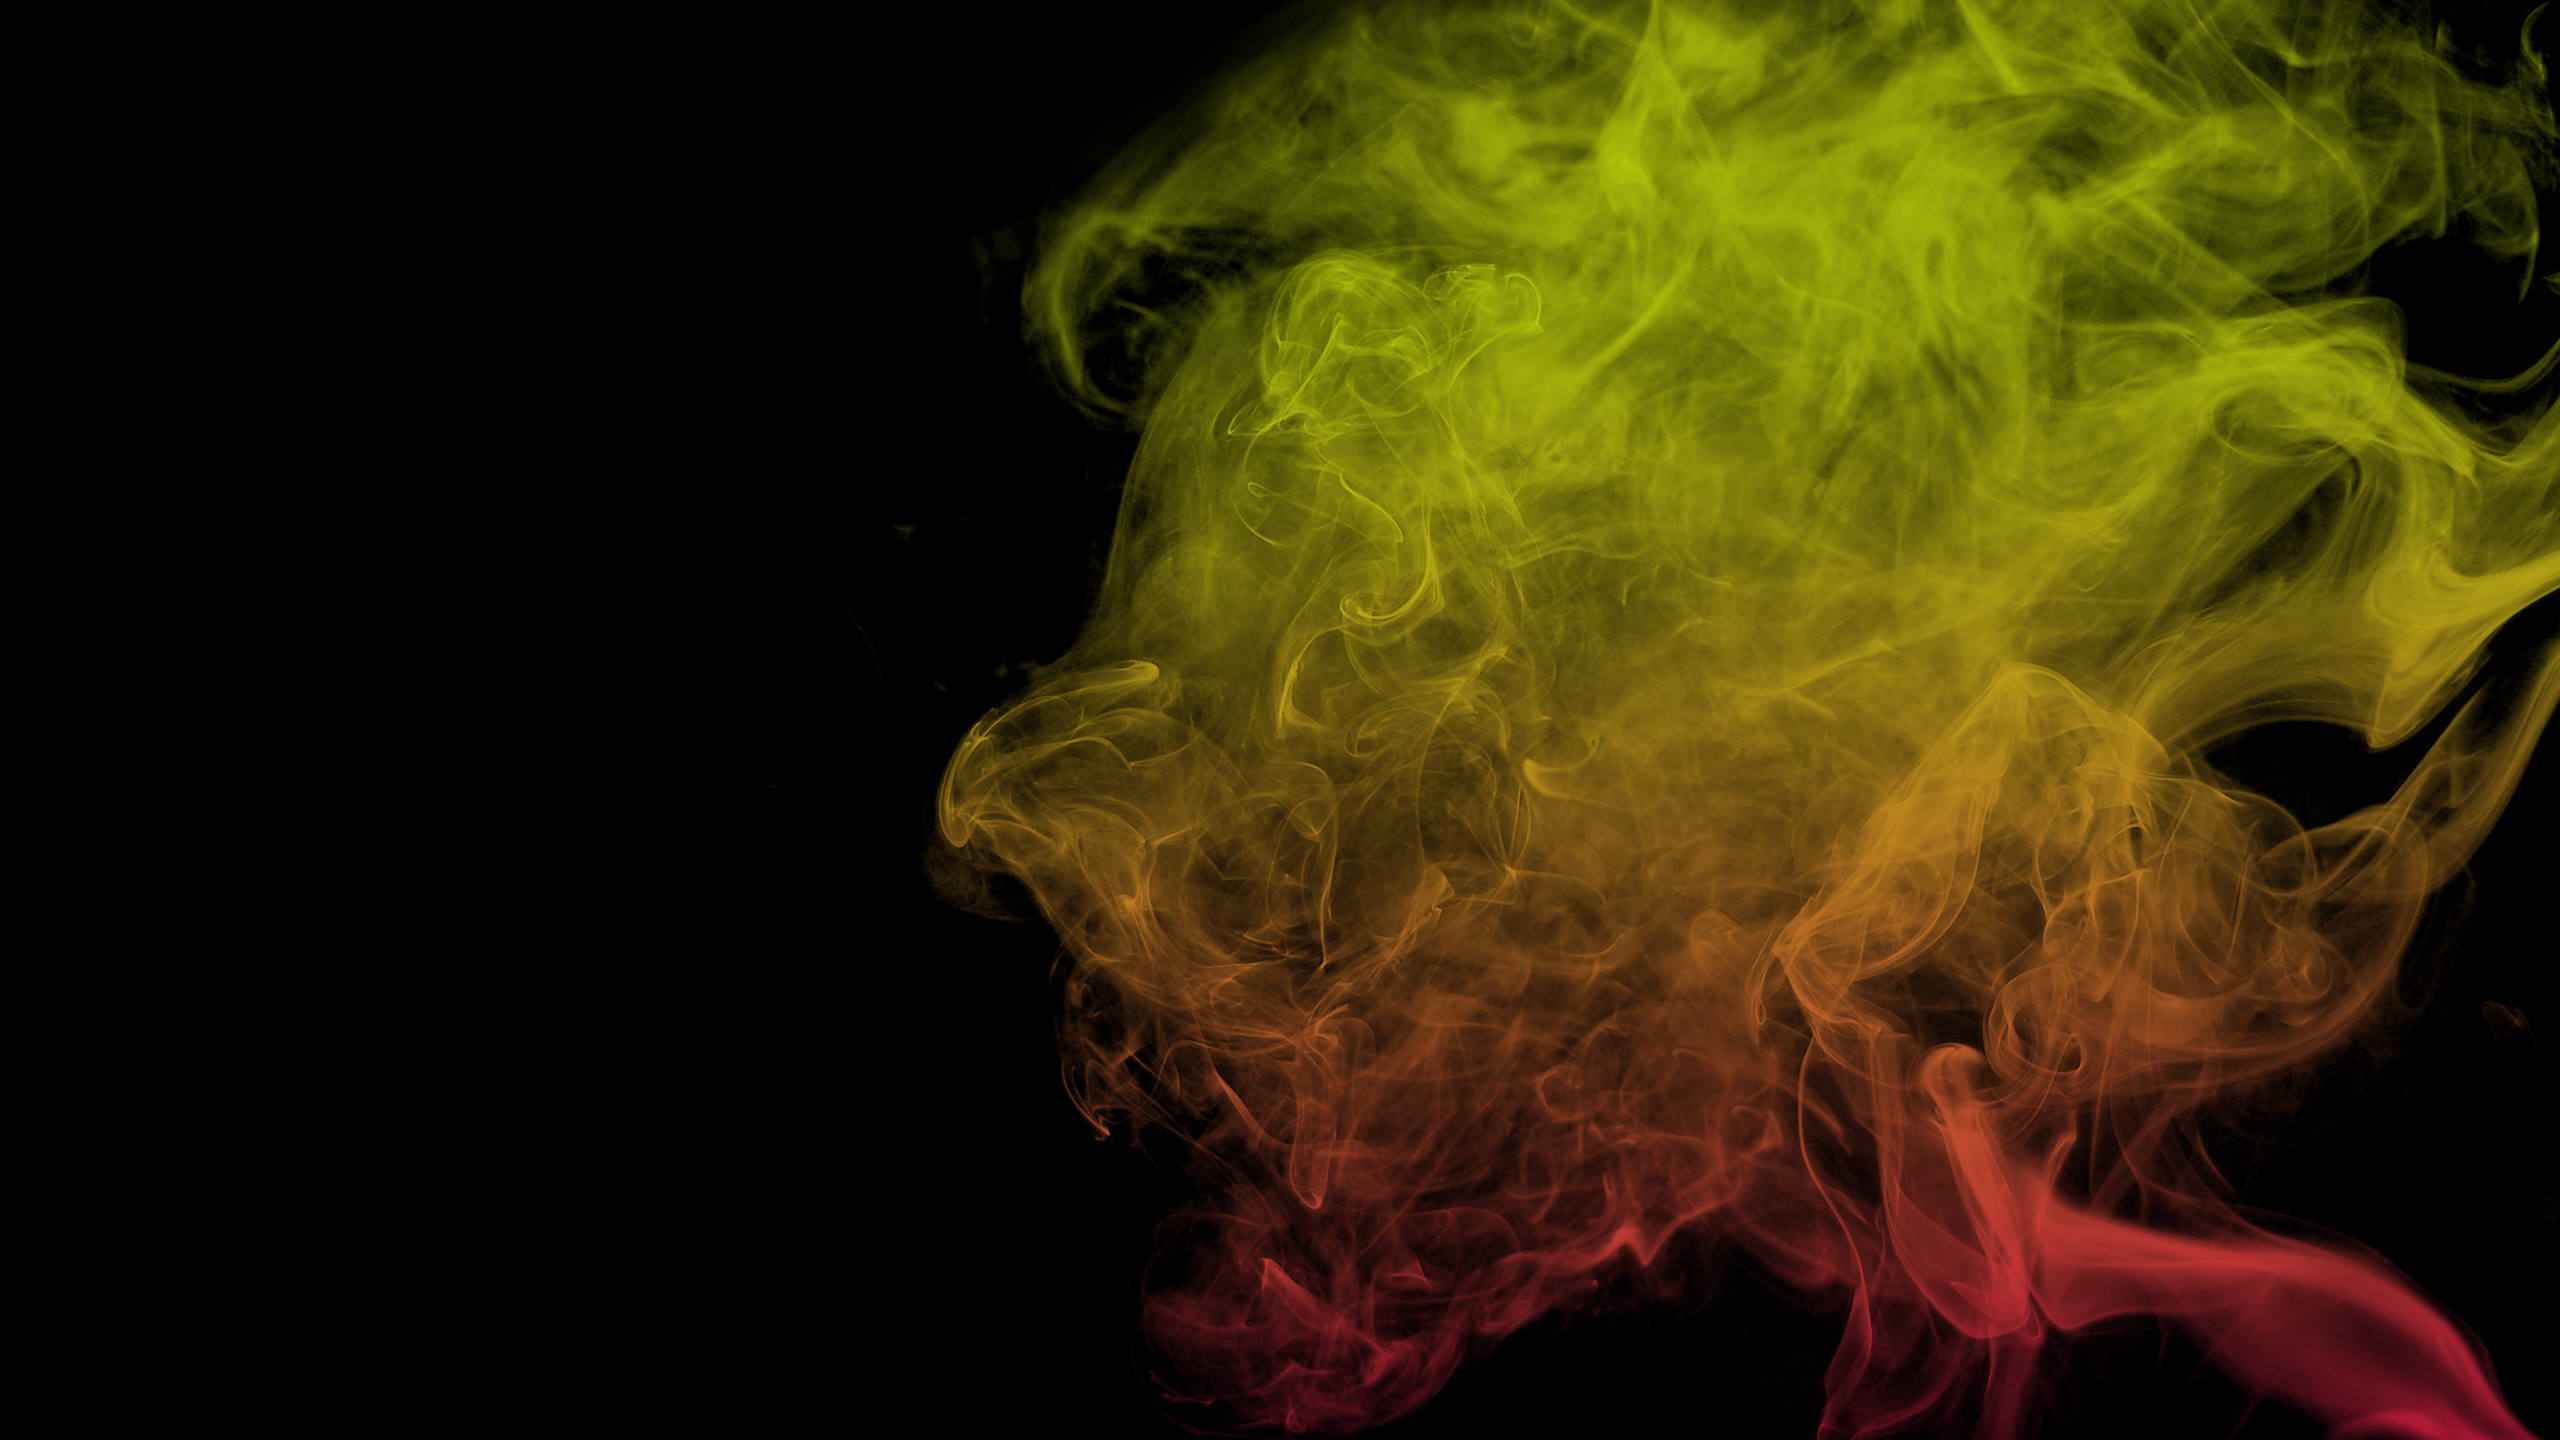 rasta lion wallpaper 10 smoke wallpaper hd rasta wallpaper hd